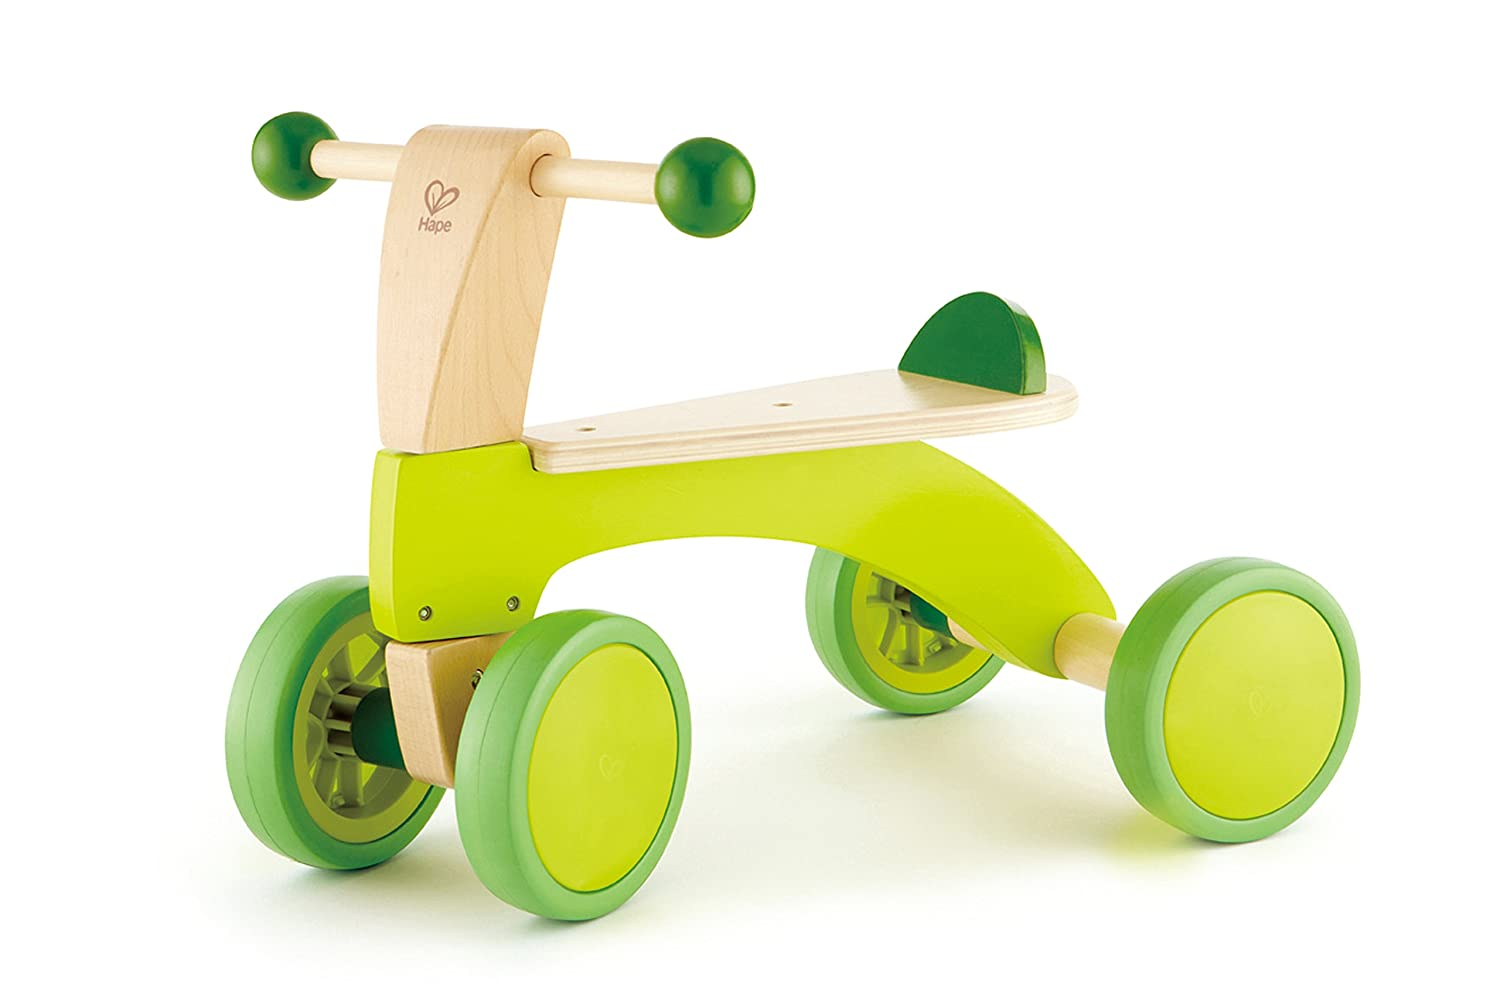 Hape Scoot Around Kid's Wooden Ride On Balance Bike E0101